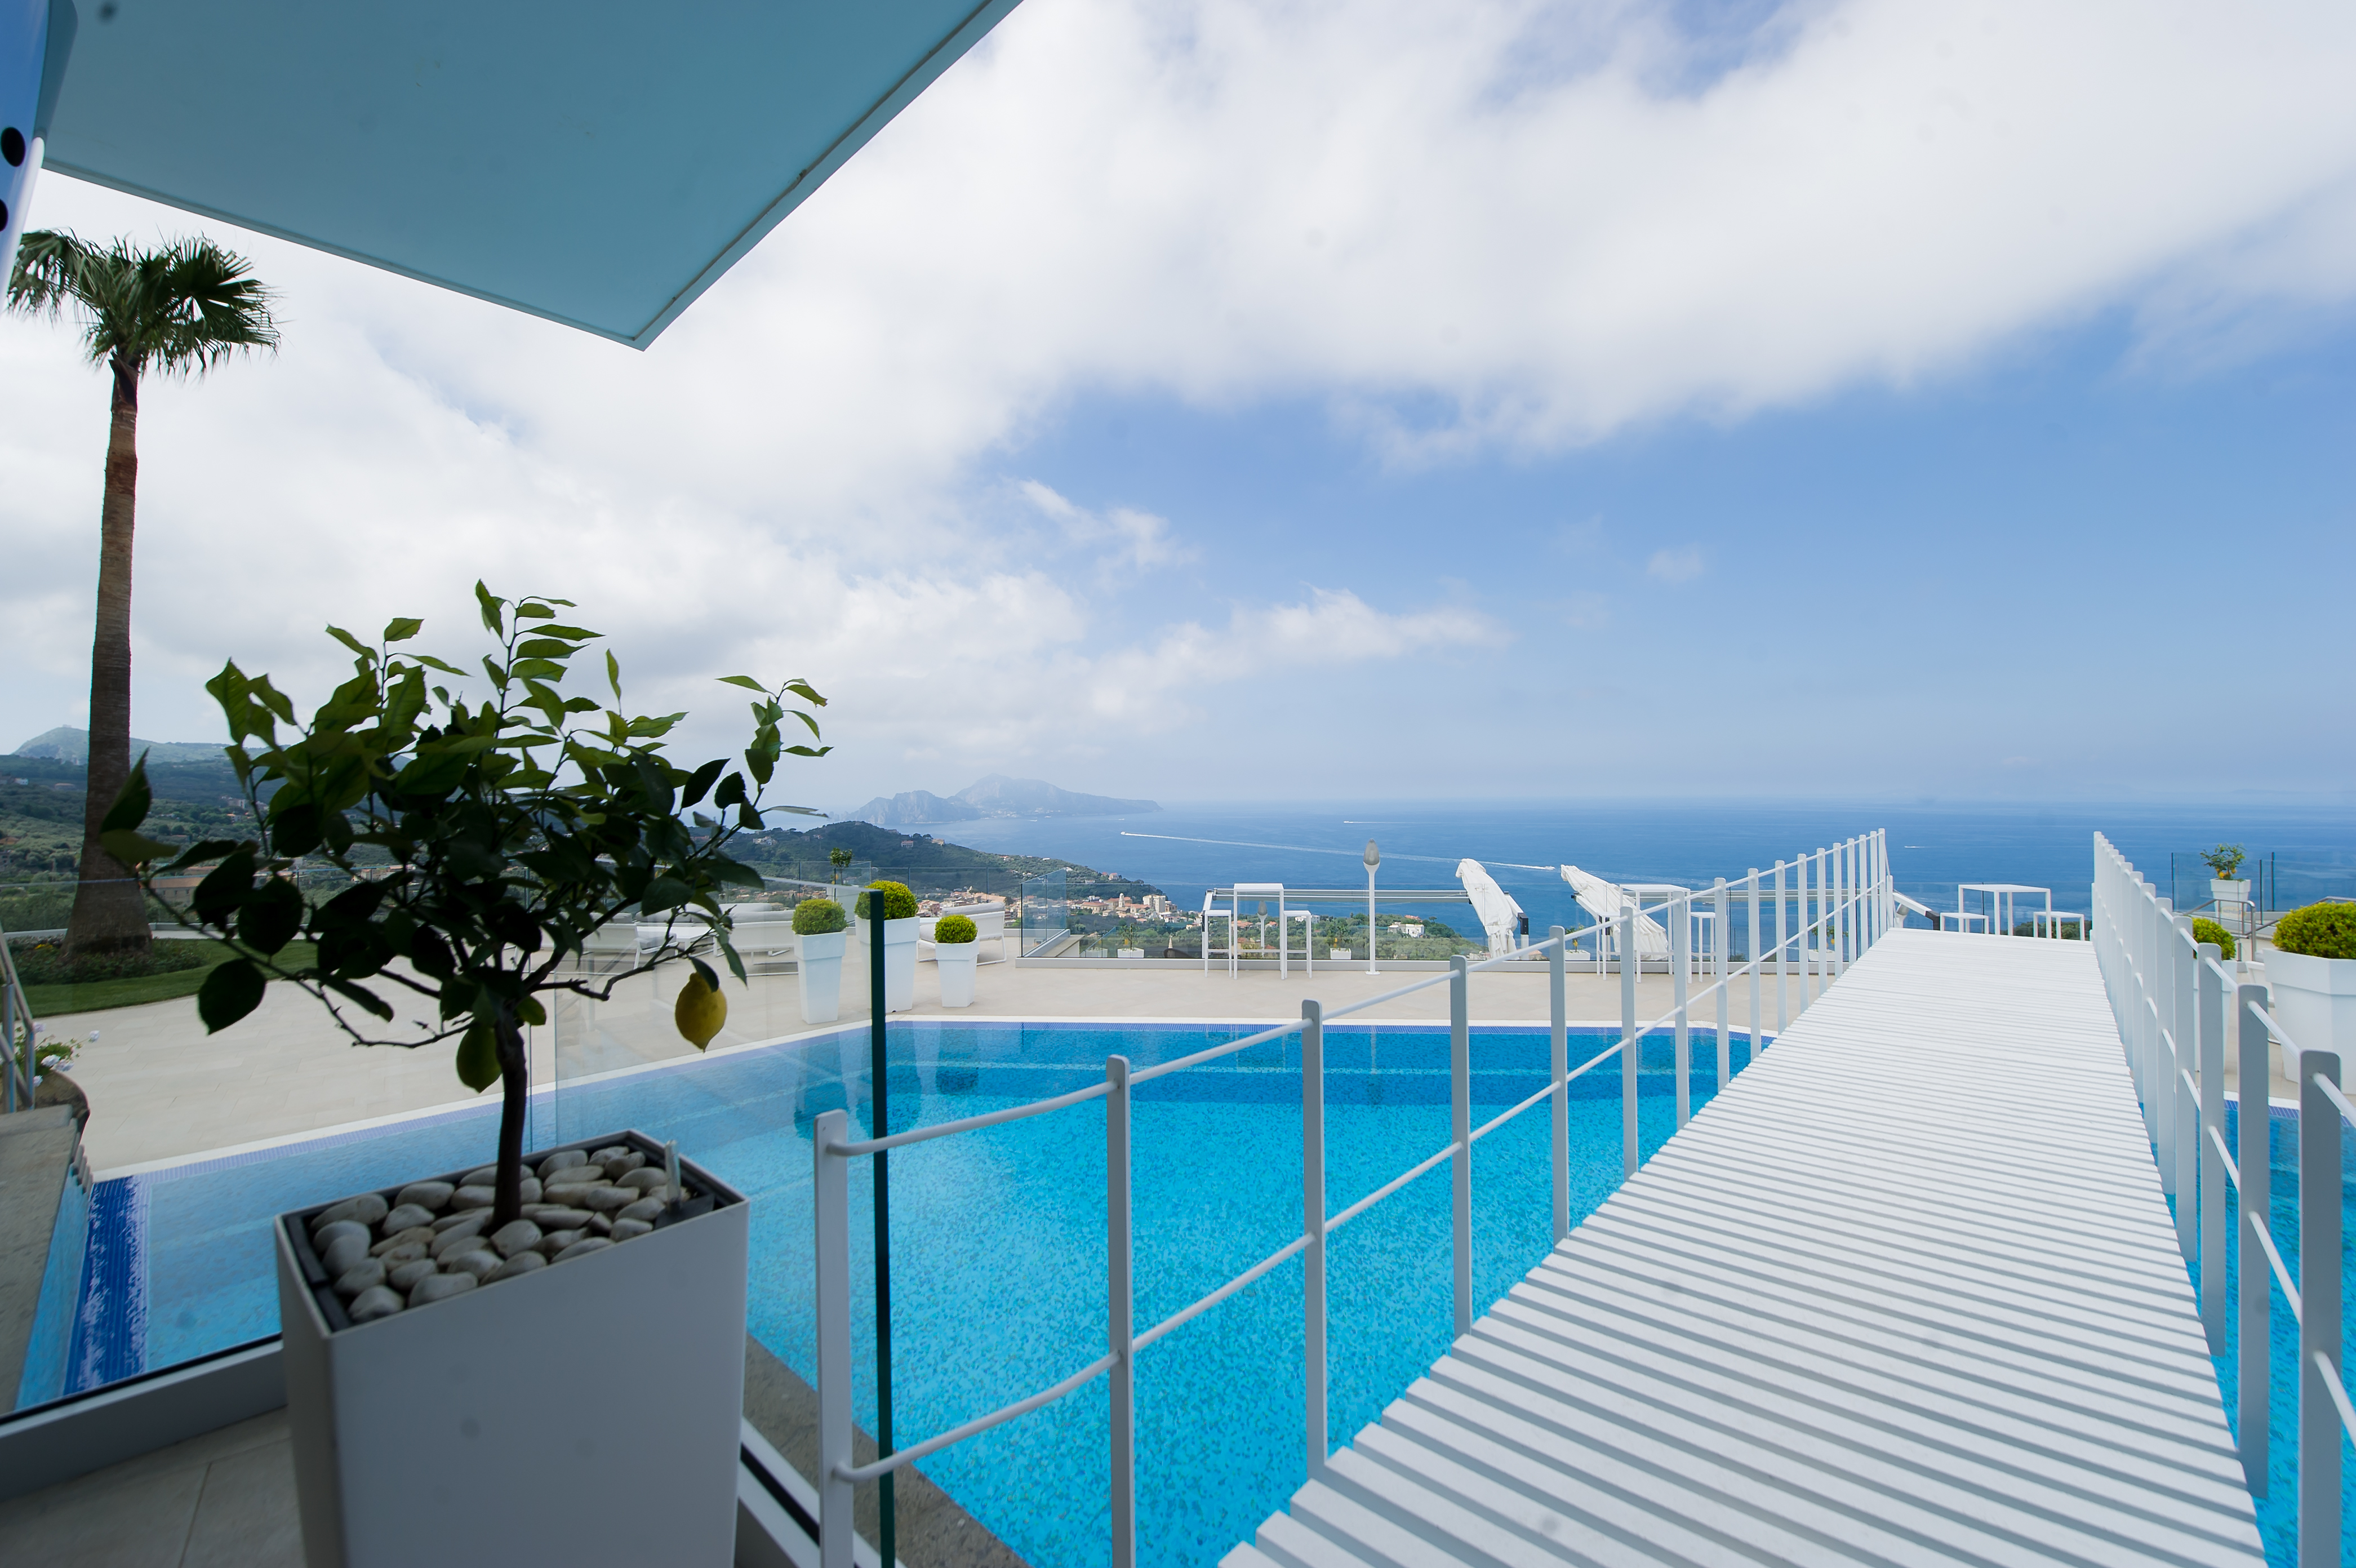 Villa Sorrento with swimming pool